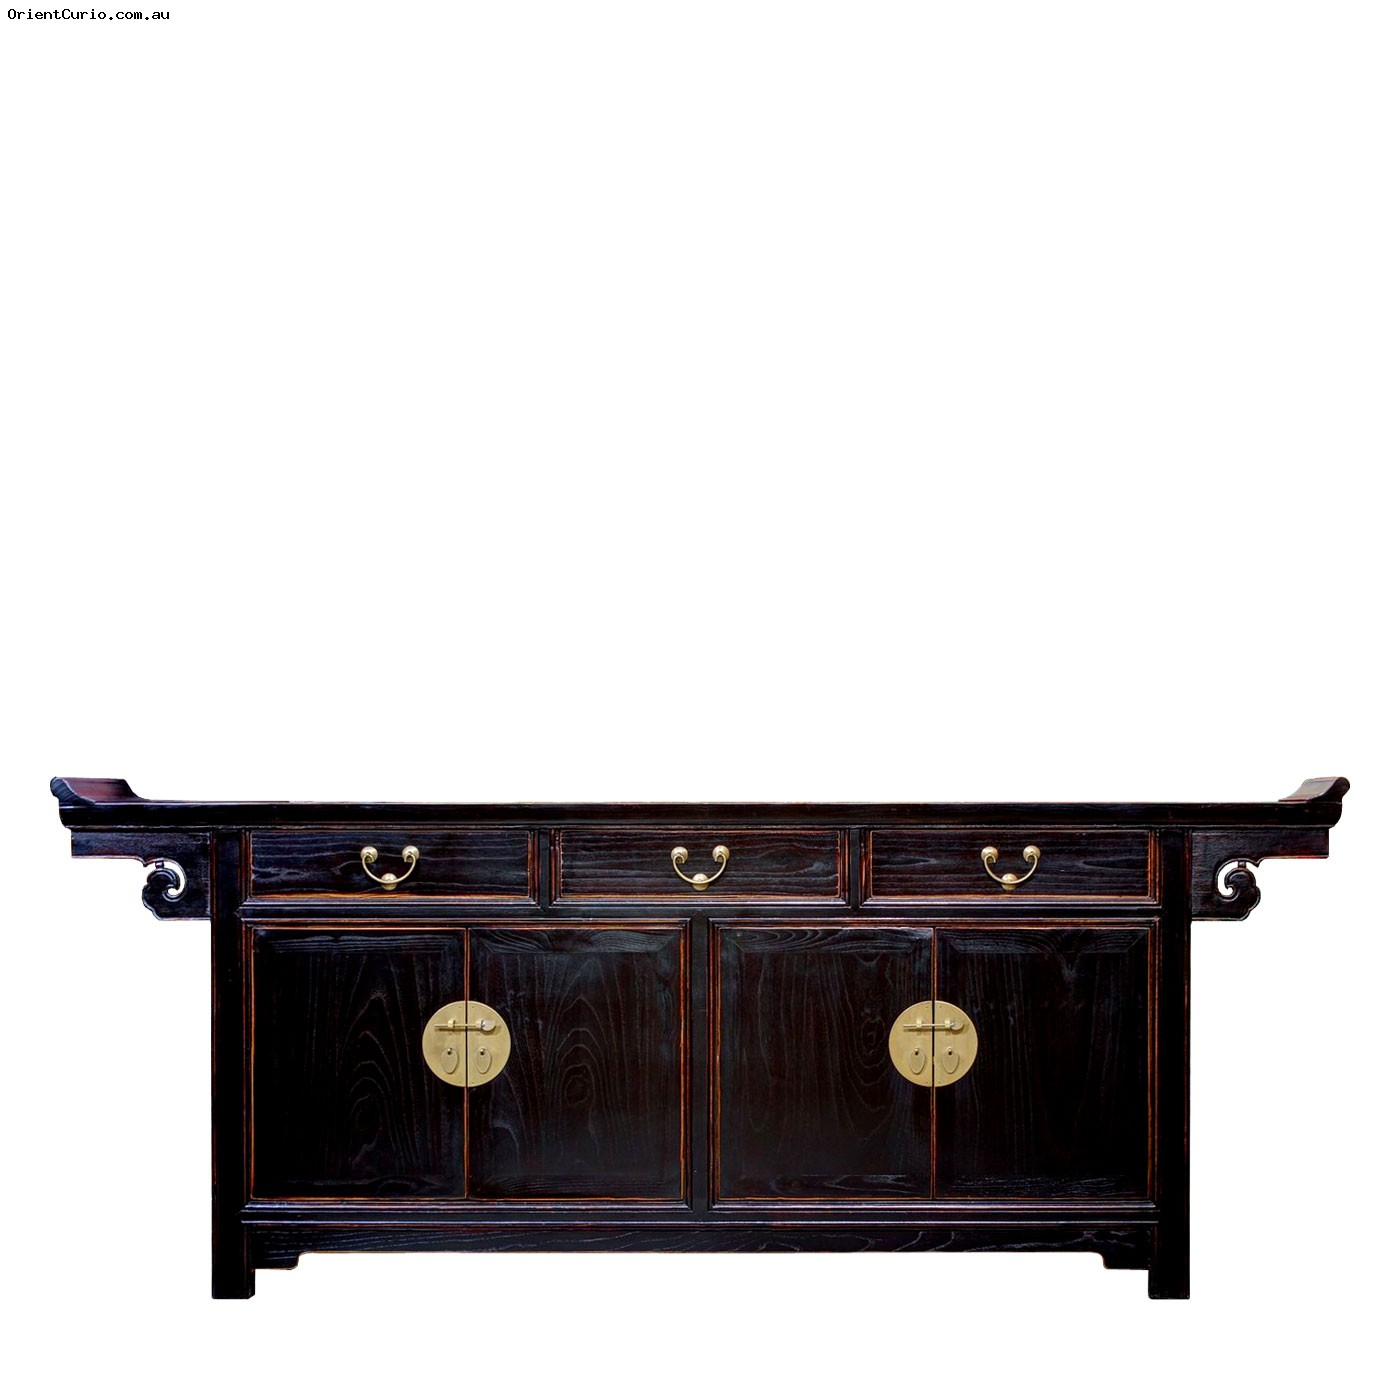 Picture of: Chinese Dark Brown Color Altar Style Long Buffet Sideboard Cabinet 3 Drawer 4 Door Orient Curio Asian Furniture Home Decor Melbourne